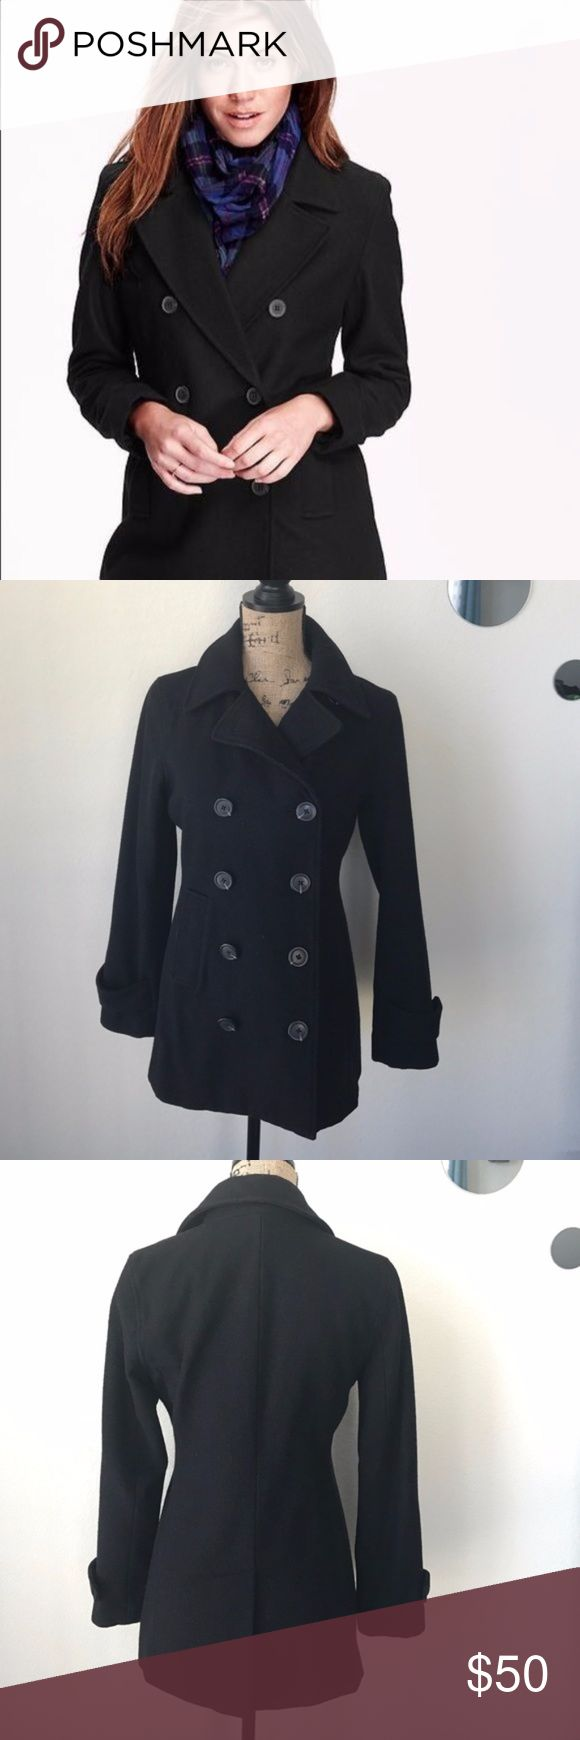 Gap Black Pea Coat Very cute black pea coat. I am a size small and this fits well, has been lightly used and the only flaw I've seen is a hole in the bottom of the inner lining of the jacket, shown in last picture. GAP Jackets & Coats Pea Coats